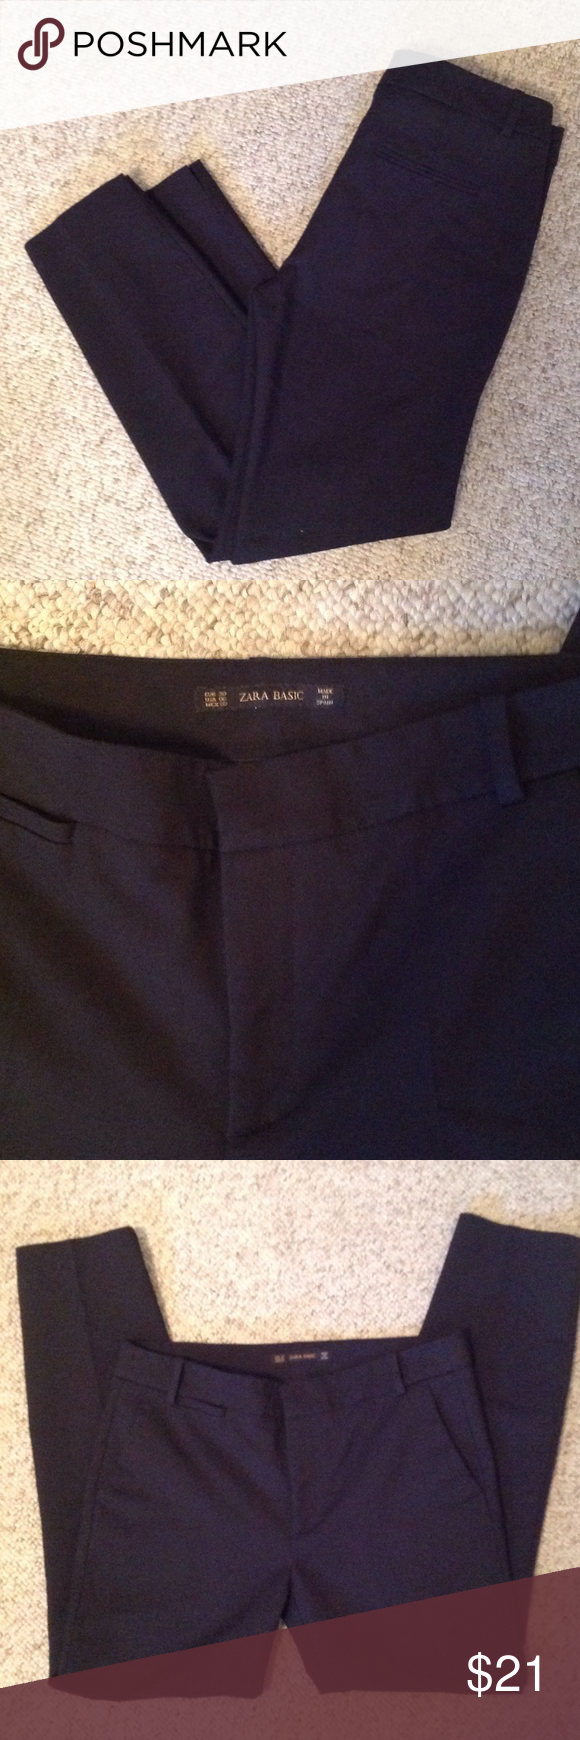 Zara black pants Zara basic black slacks. They have a very small slit at the ankle. Perfect used condition. No fading. Zara Pants